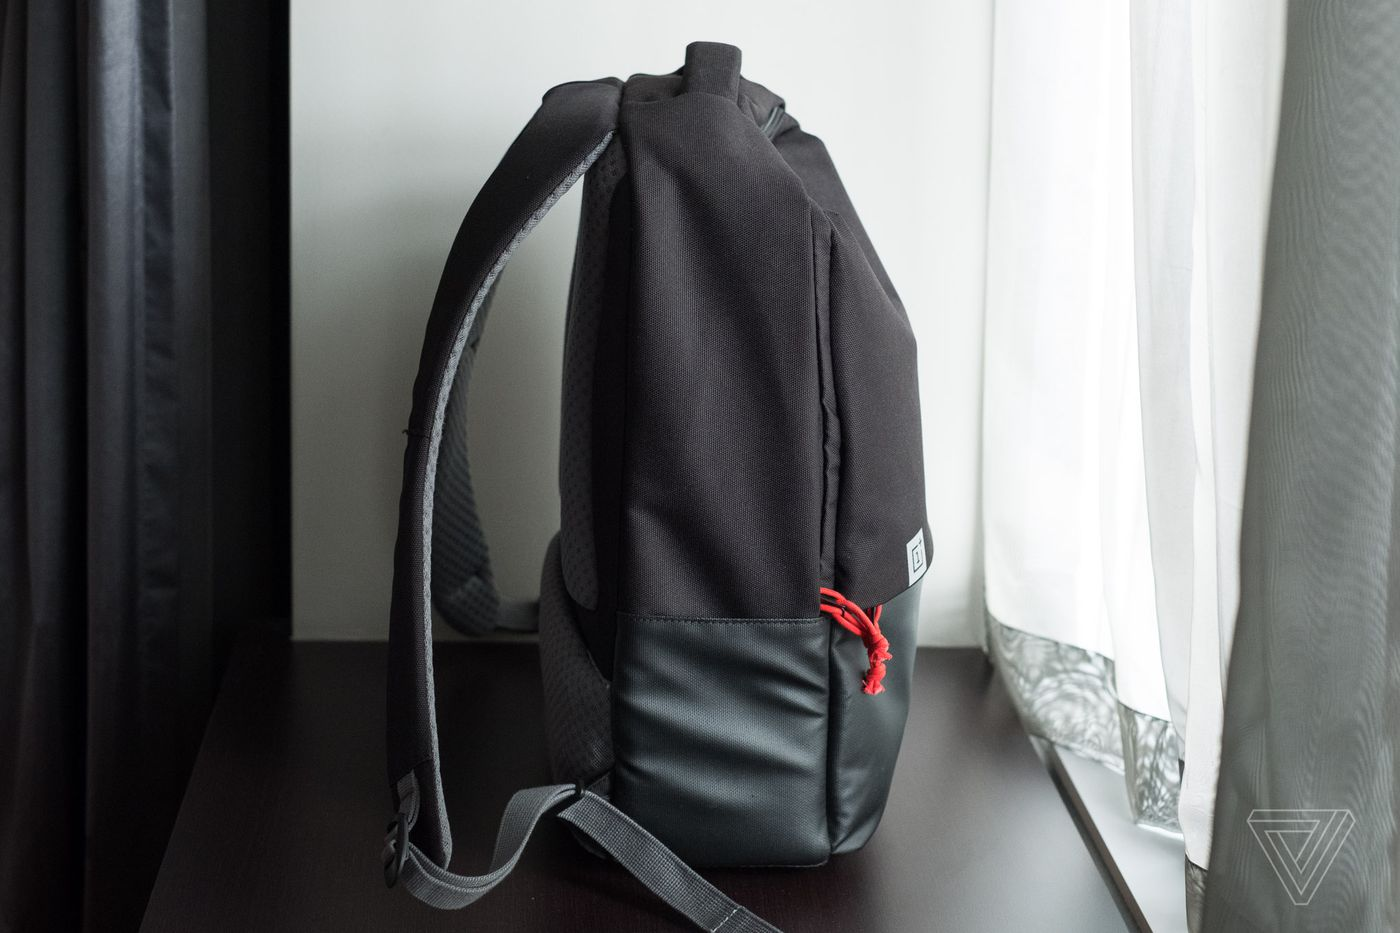 c38838ccdfa The best OnePlus product this year is the Travel Backpack - The Verge